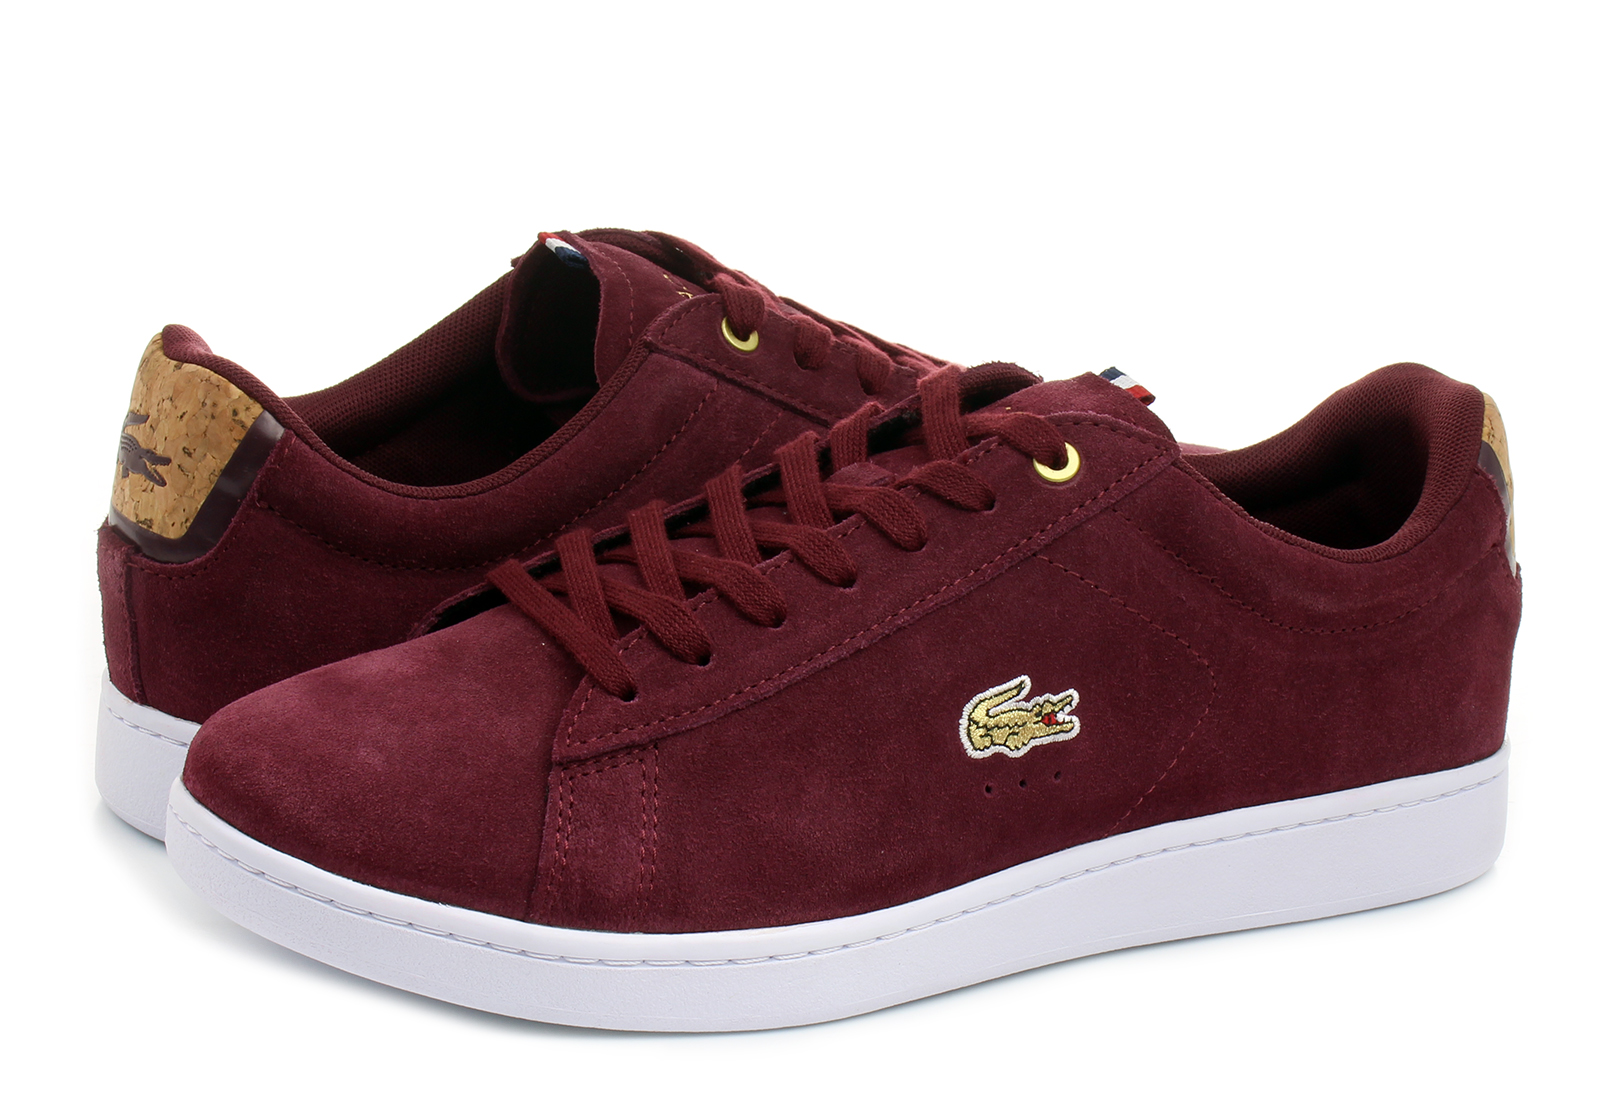 Lacoste Cipő - Carnaby Evo 118 4 - 181spm0007-2h2 - Office Shoes ... 699c6dc28f